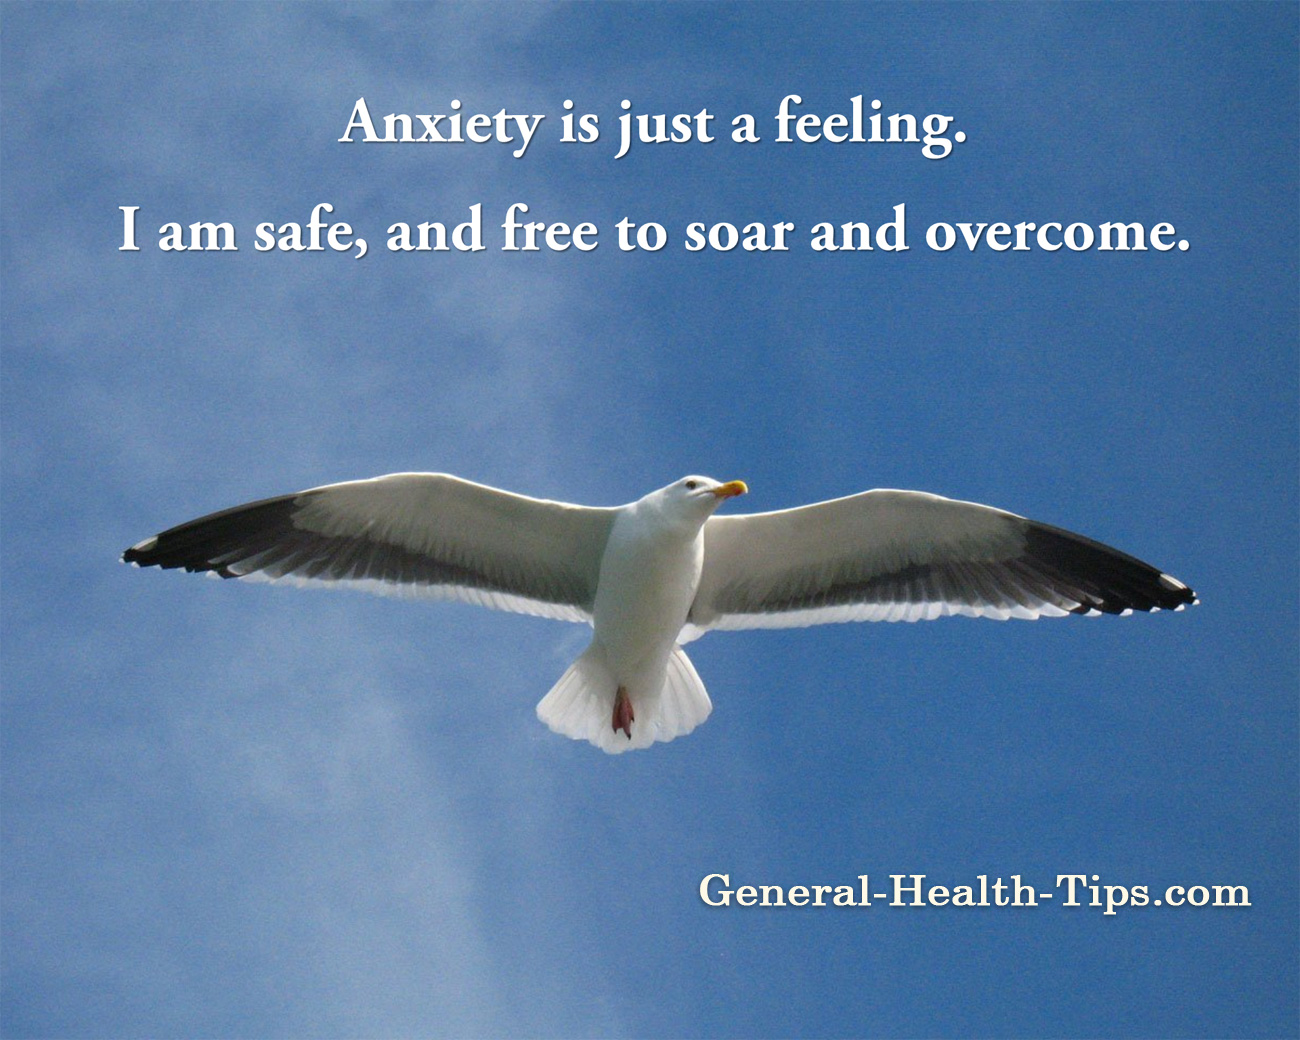 Overcoming Depression Quotes Calming Quotes For Anxiety And Depression   Health Tips For Men